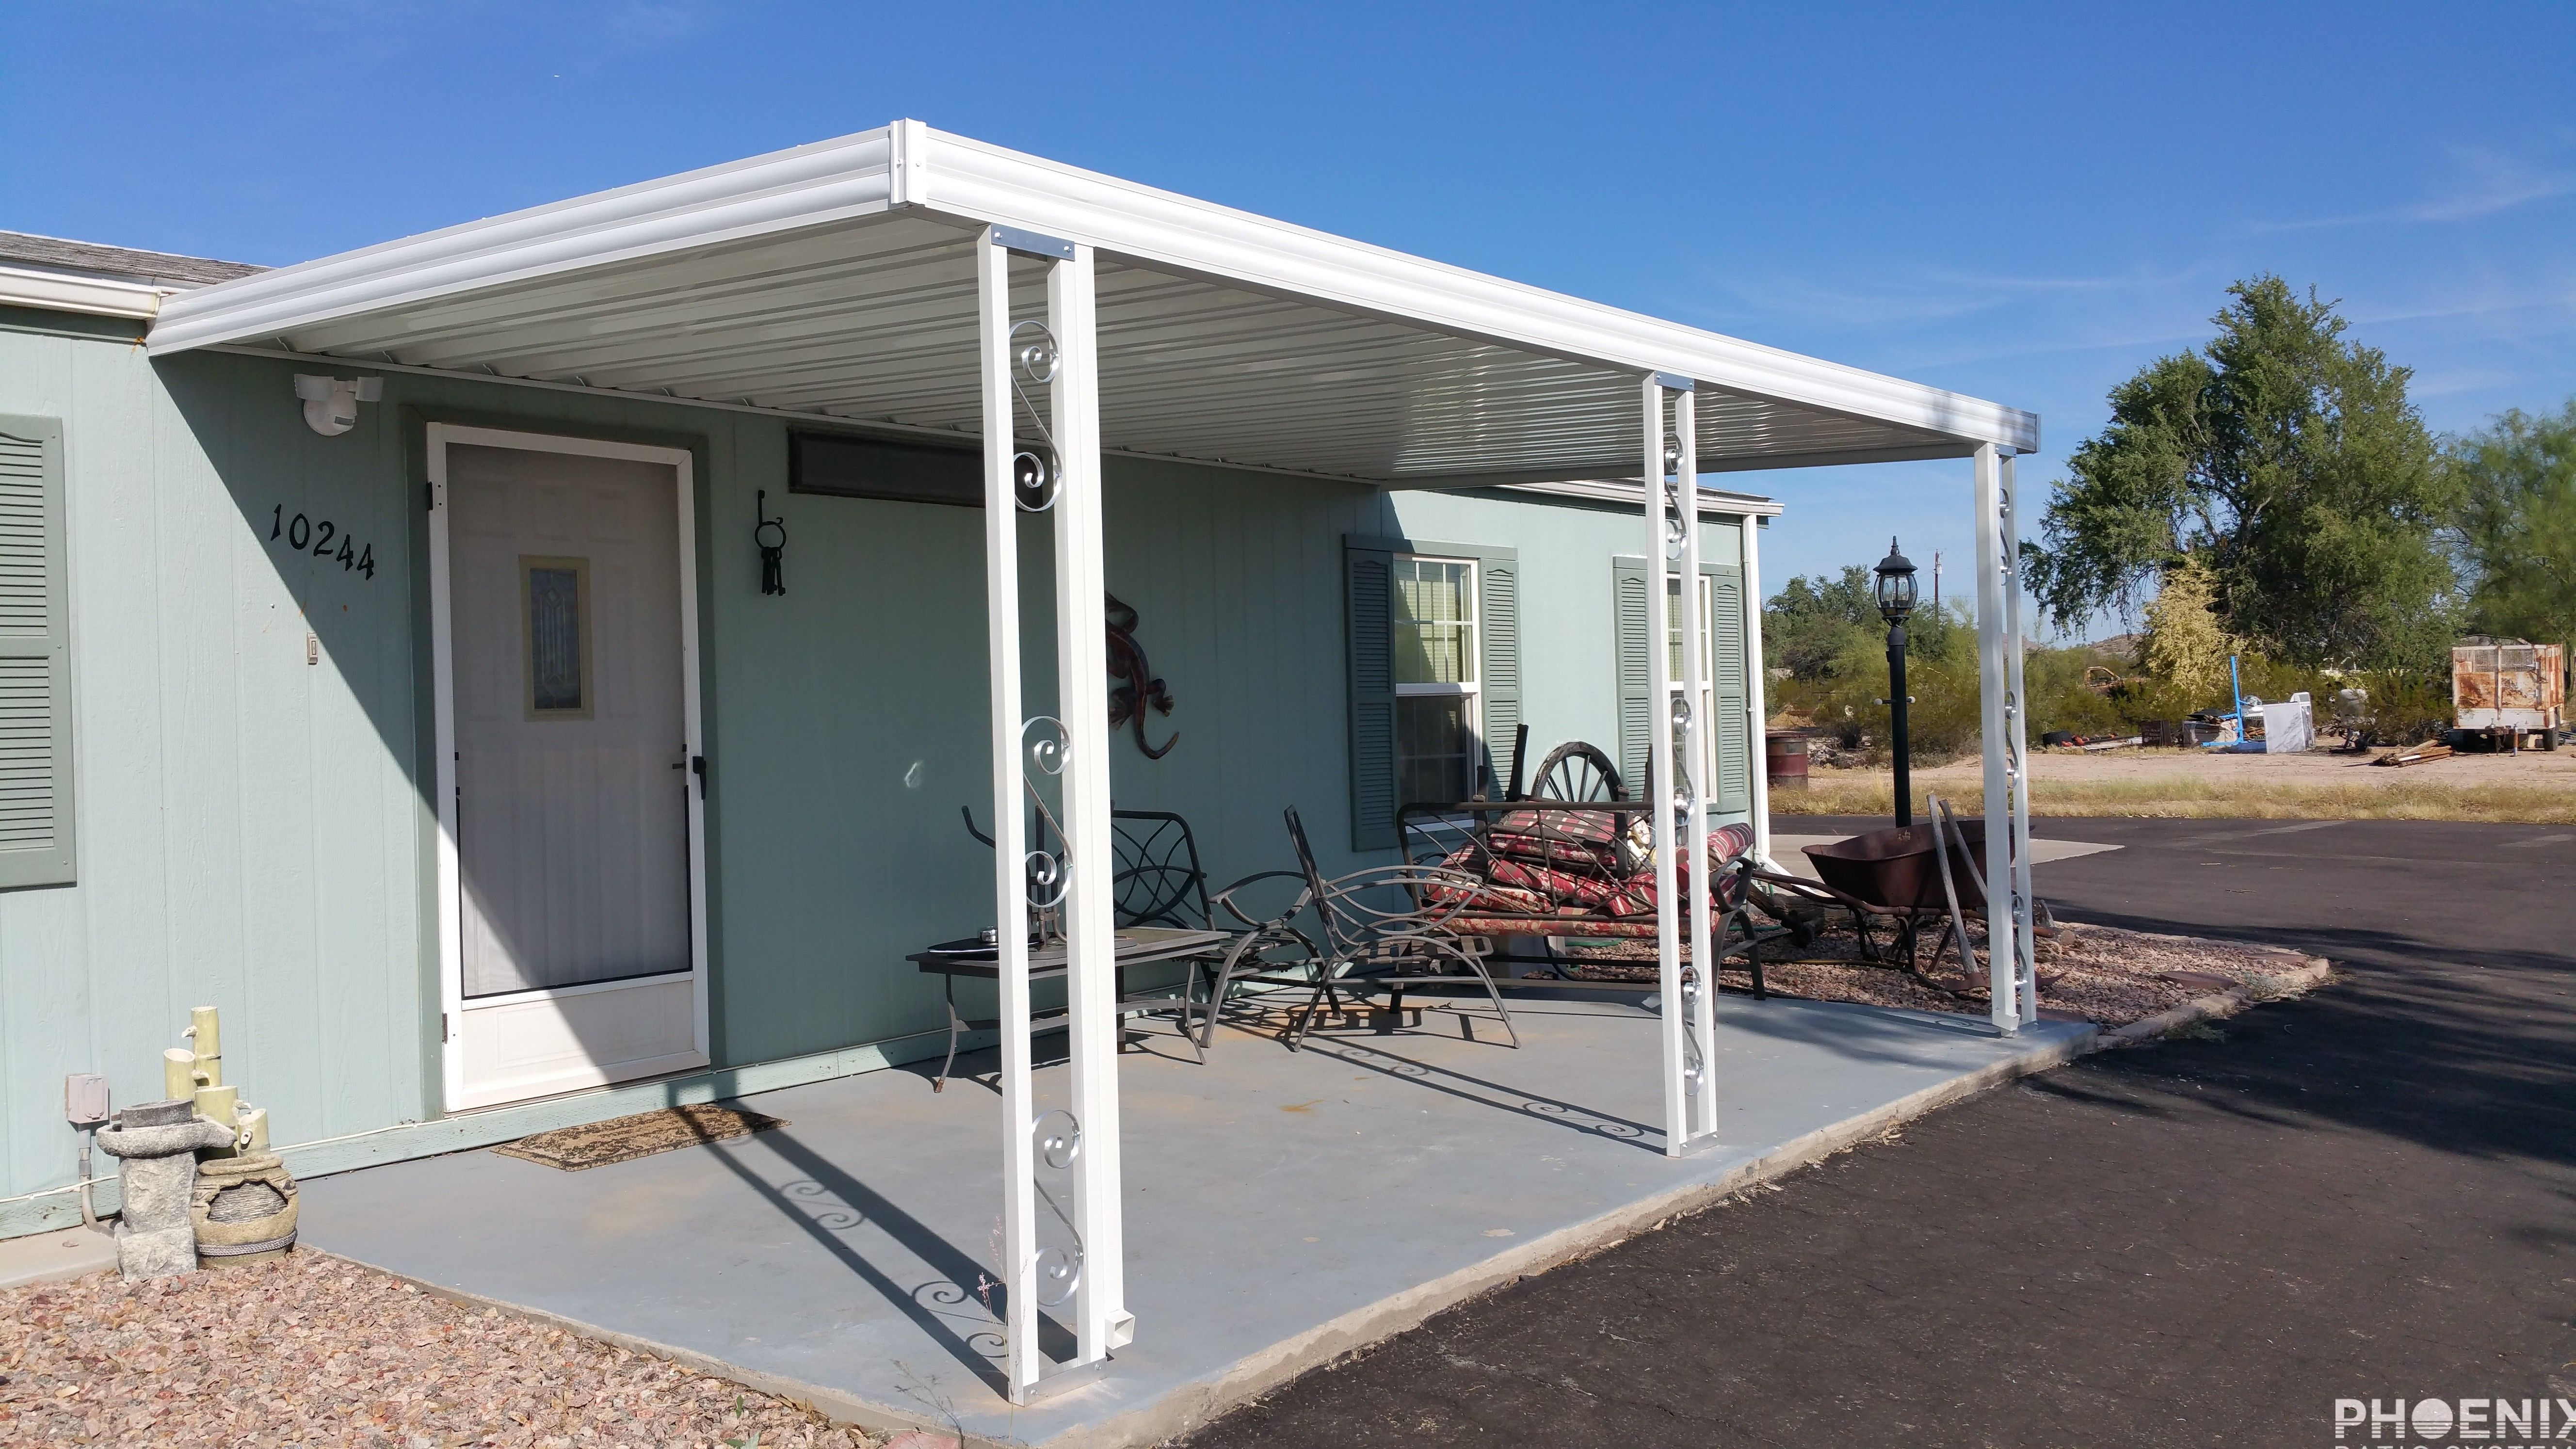 Aluminum Patio Cover (With images) Aluminum awnings